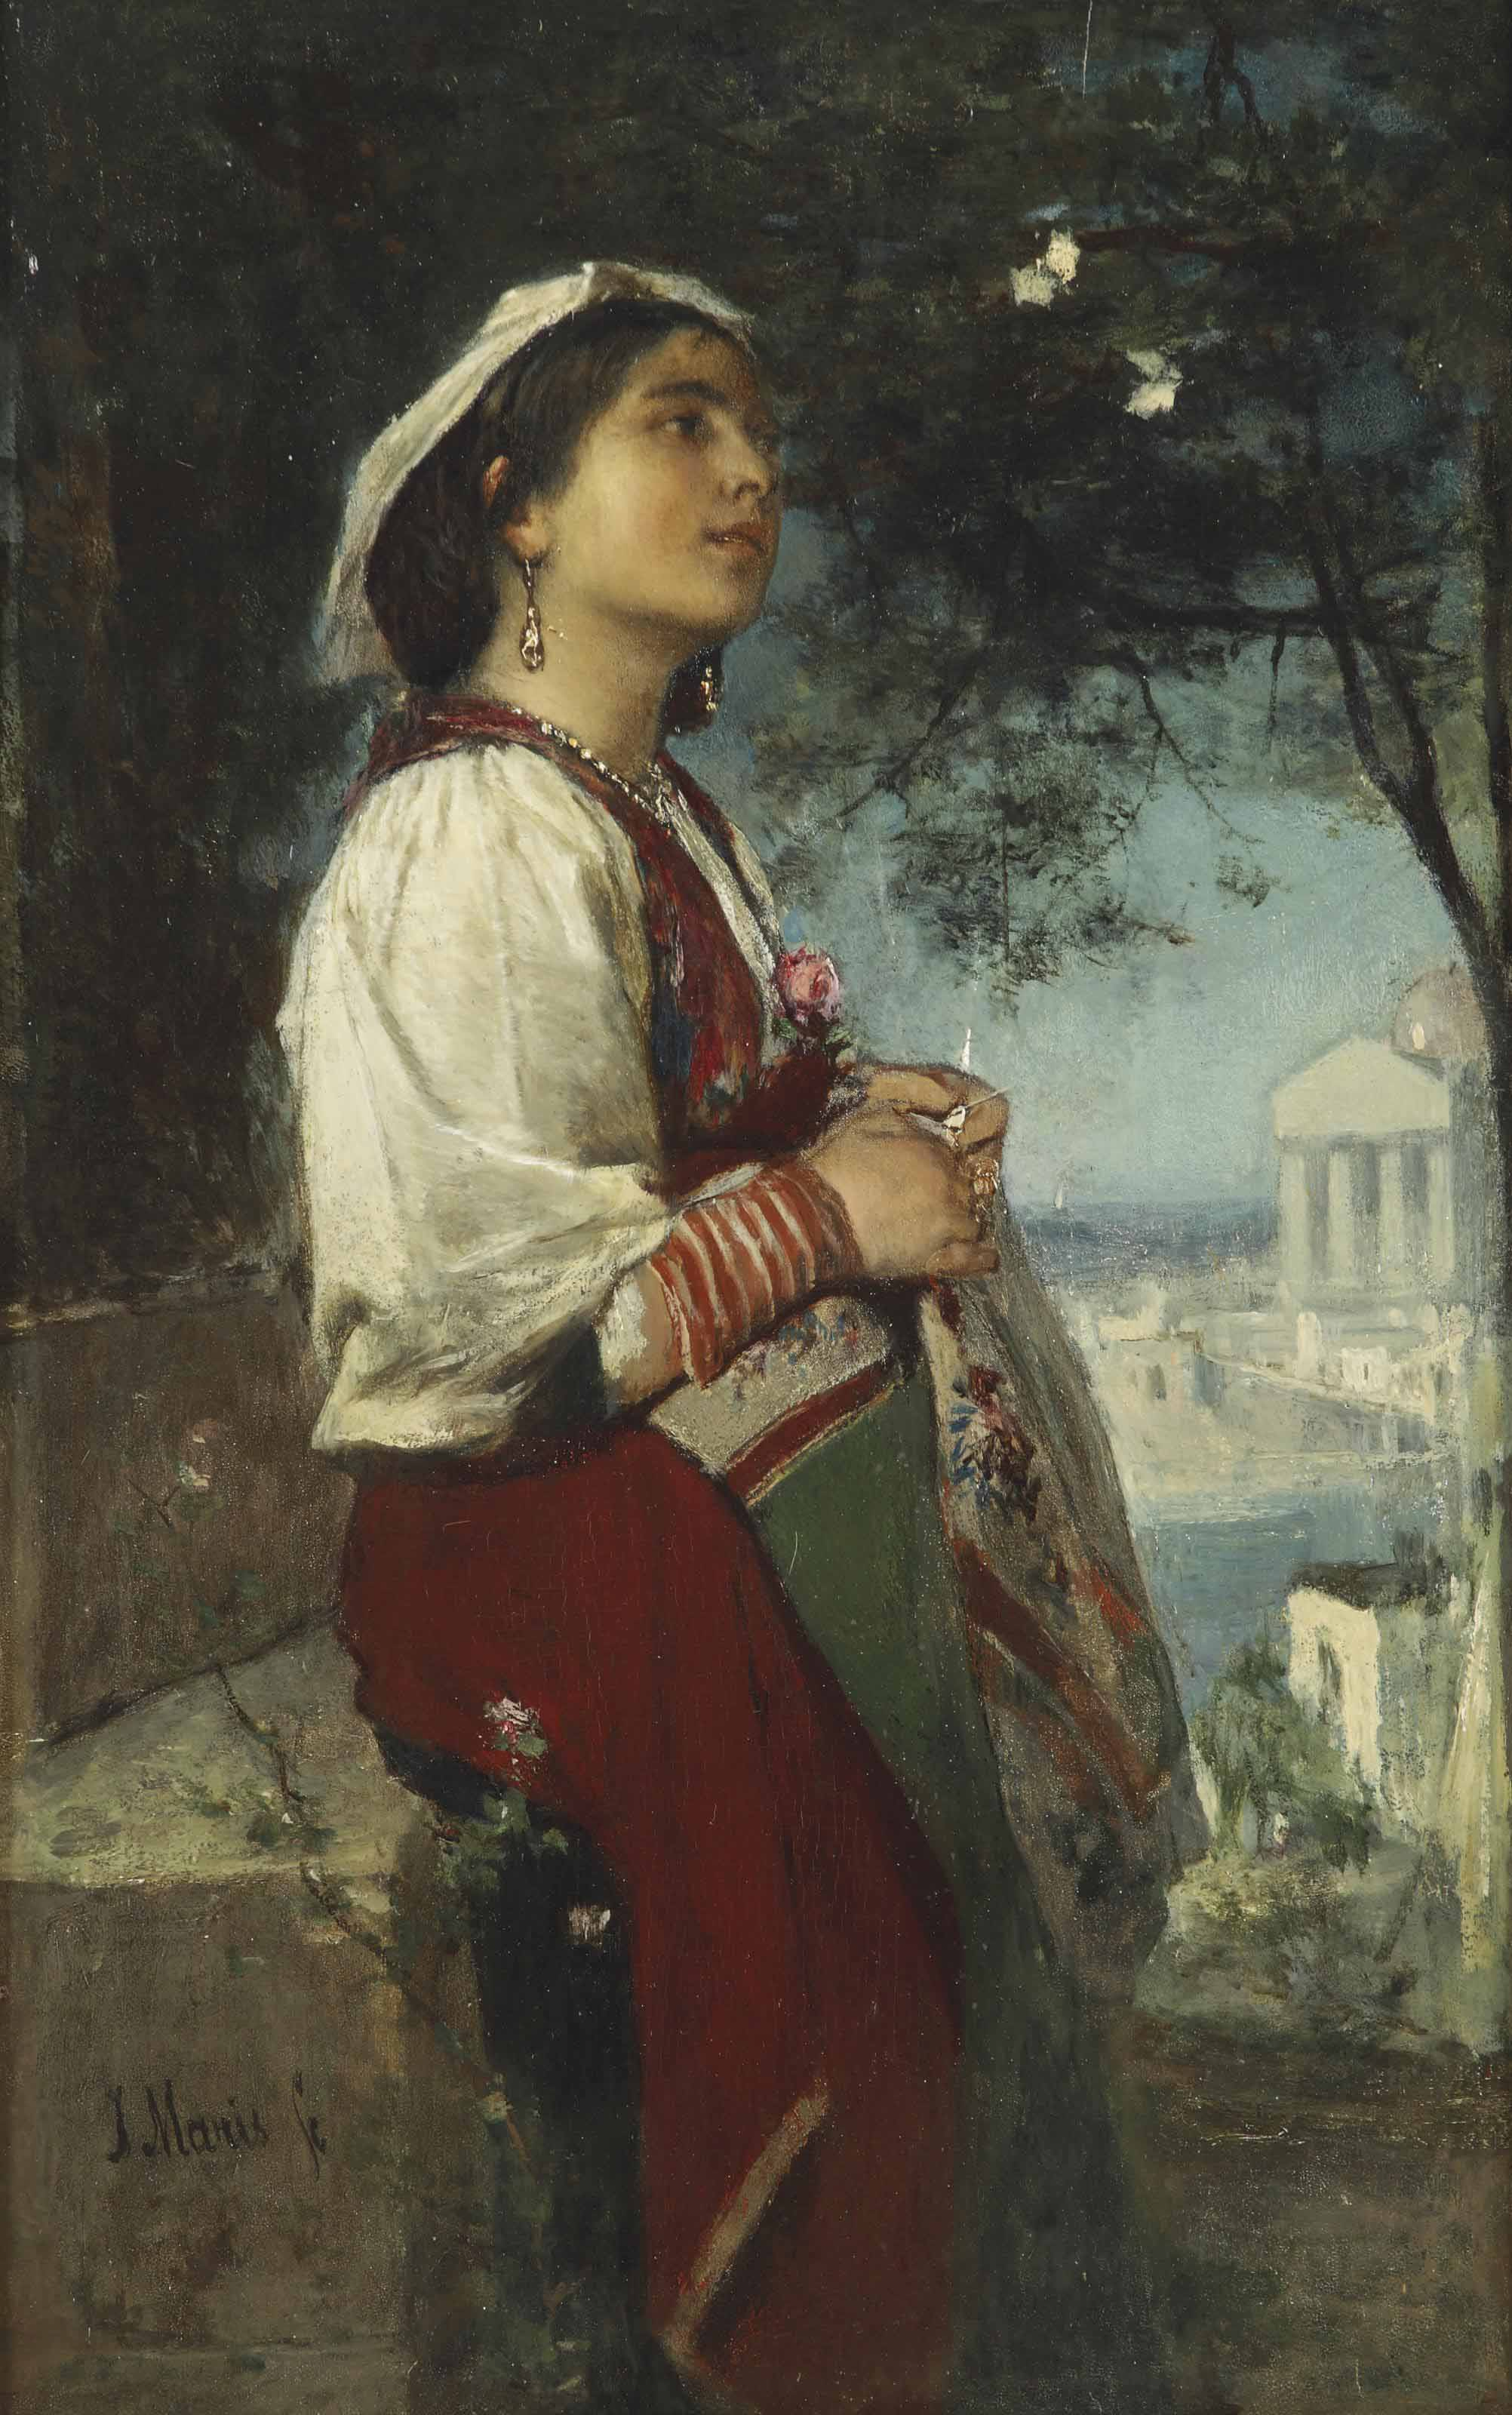 A young Italian beauty with butterflies